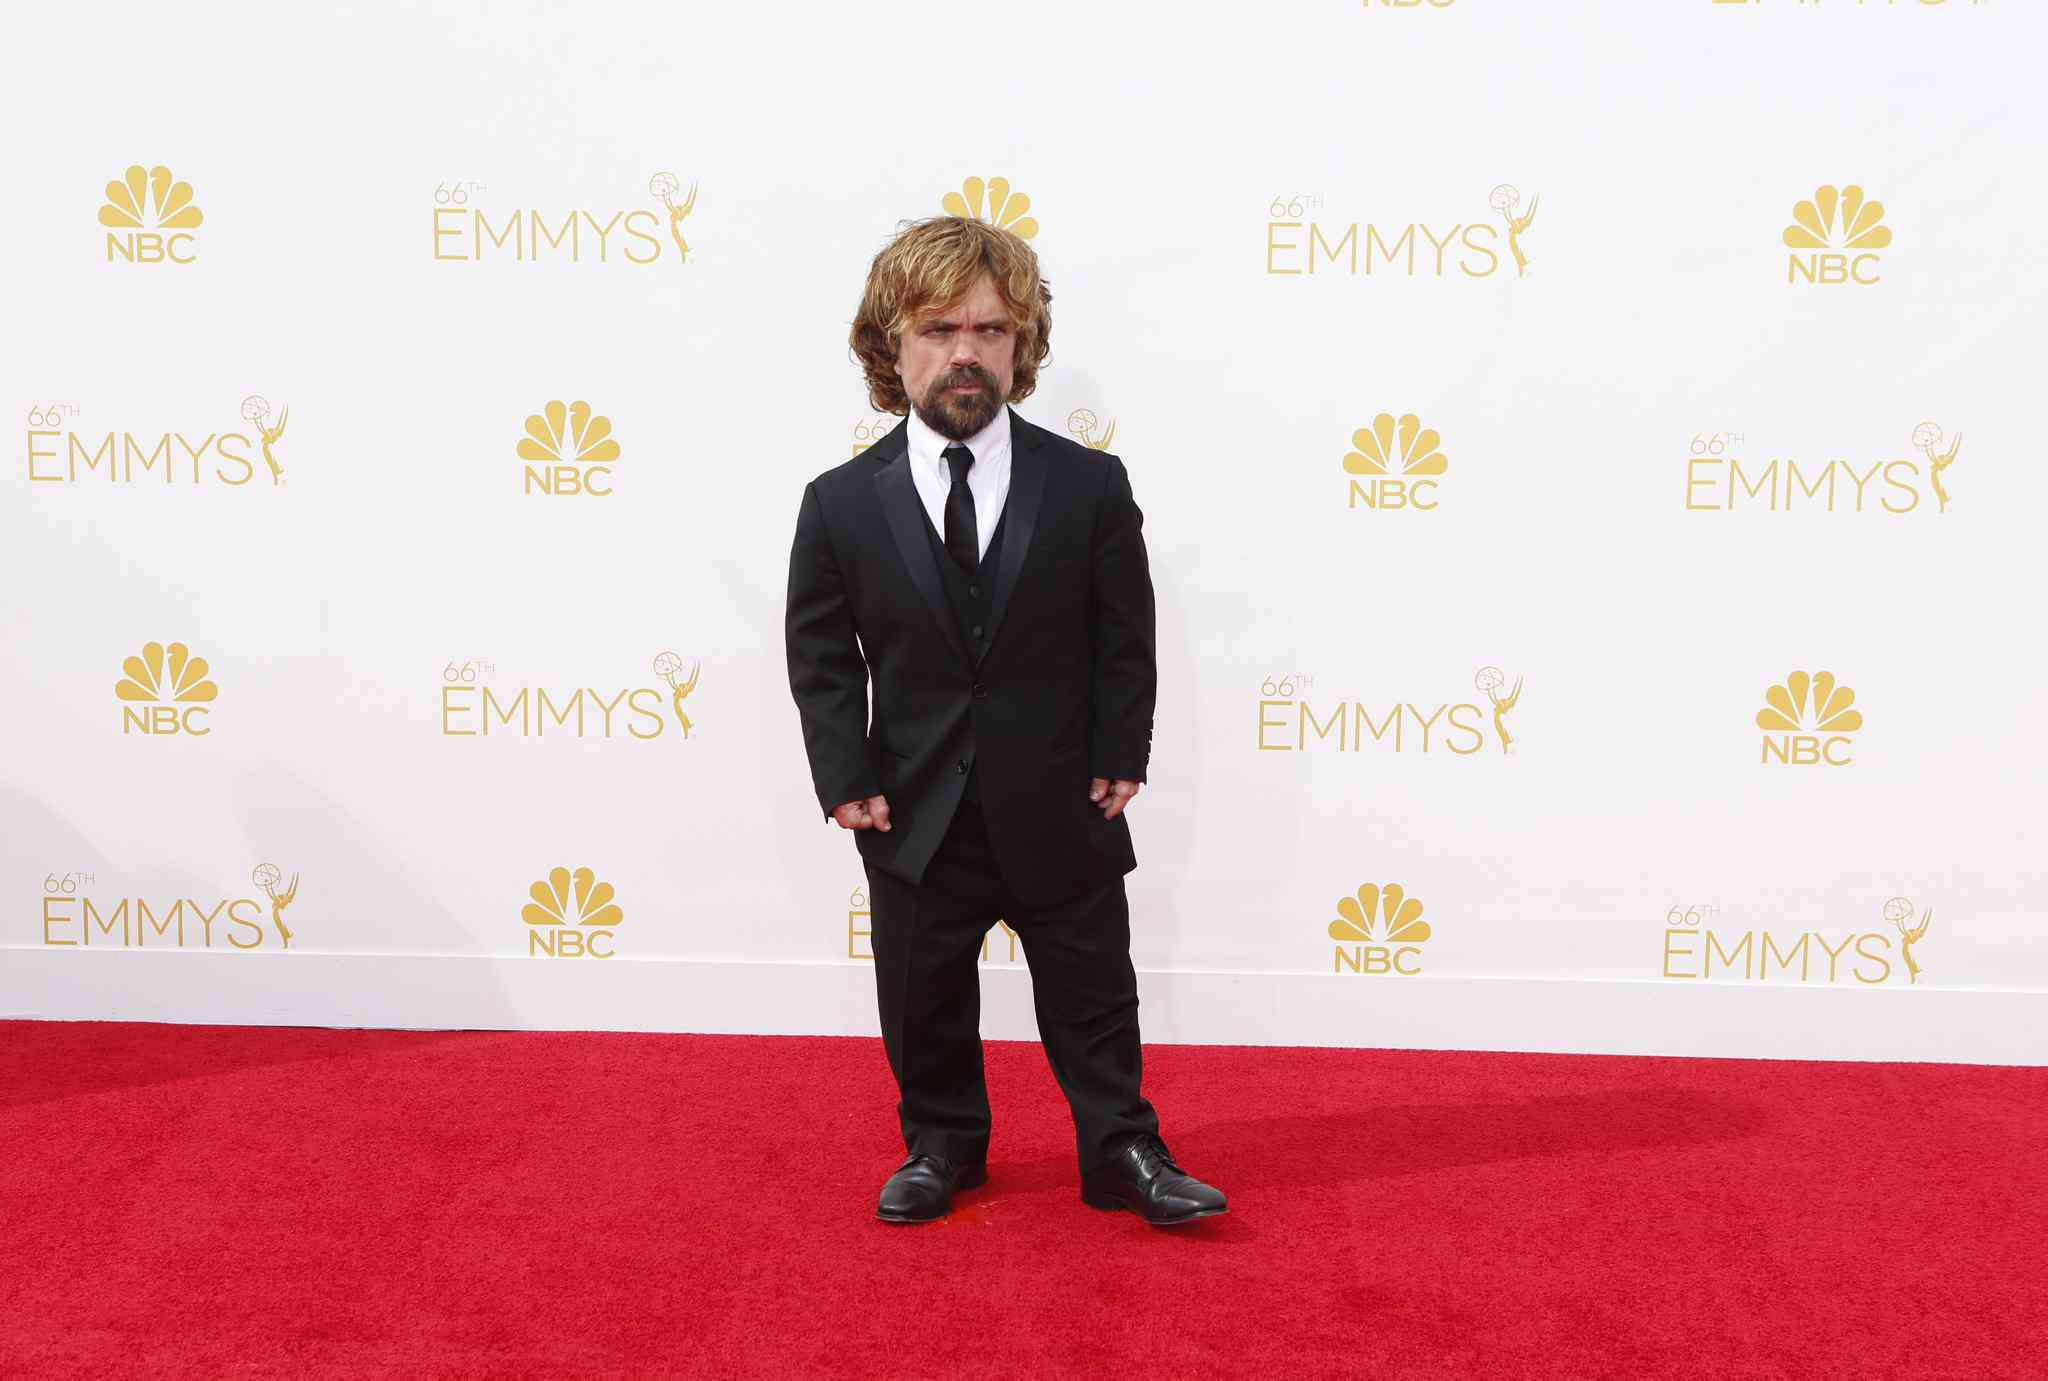 Peter Dinklage (Game of Thrones) arrives for the 66th Annual Primetime Emmy Awards at Nokia Theatre at L.A. Live in Los Angeles.